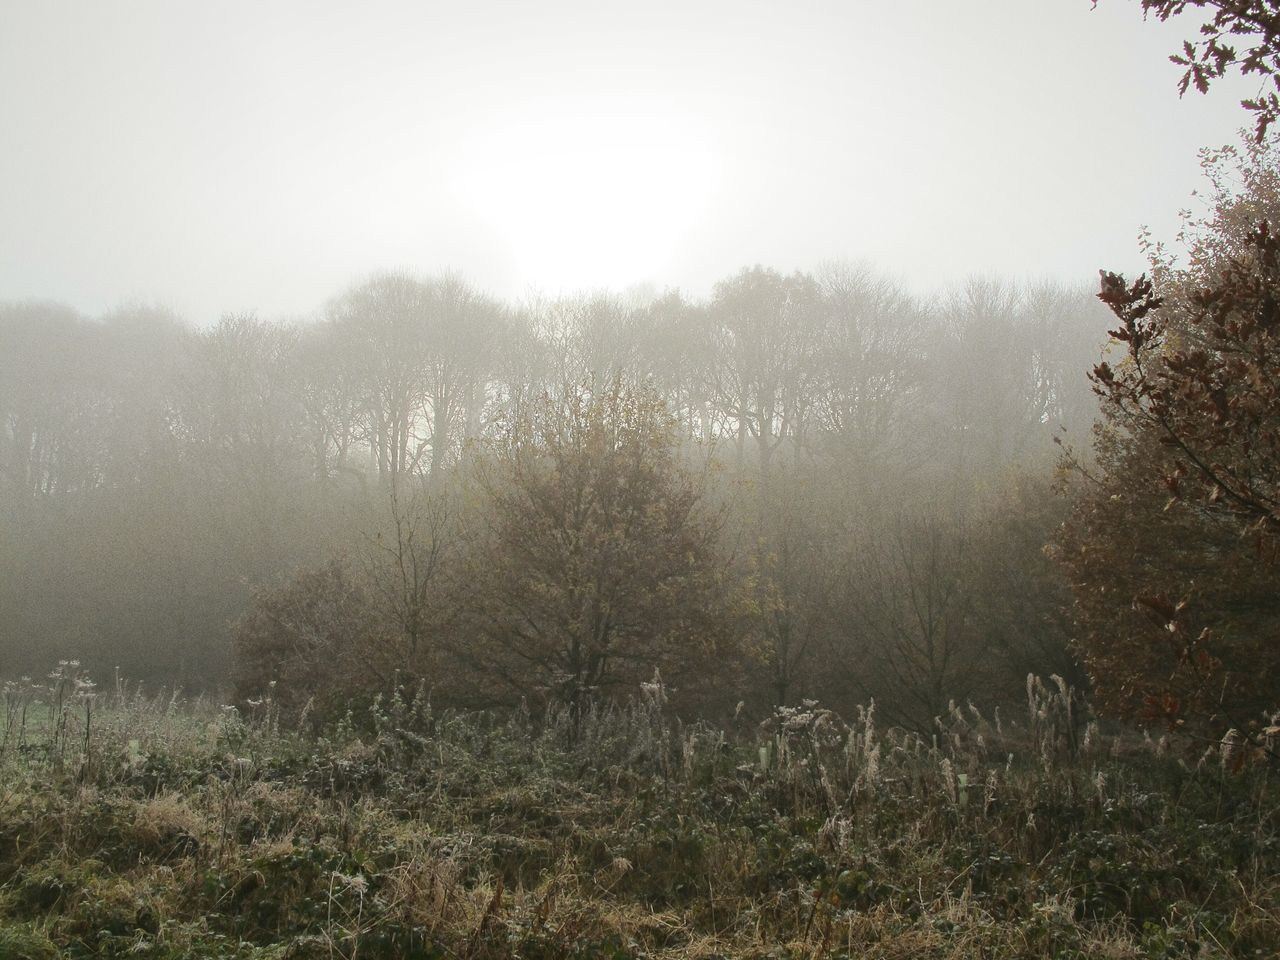 Fog Nature Tree Landscape Growth Beauty In Nature Tranquility Outdoors No People Water Sky Day Grass Hazy  Foggy Morning EyeEmbestshots Cold Temperature Frosty Days Fineartphotography Tranquil Scene Foggymornings Autumnbeauty Autumn Leaves WoodLand Enchanted Forest River Bank